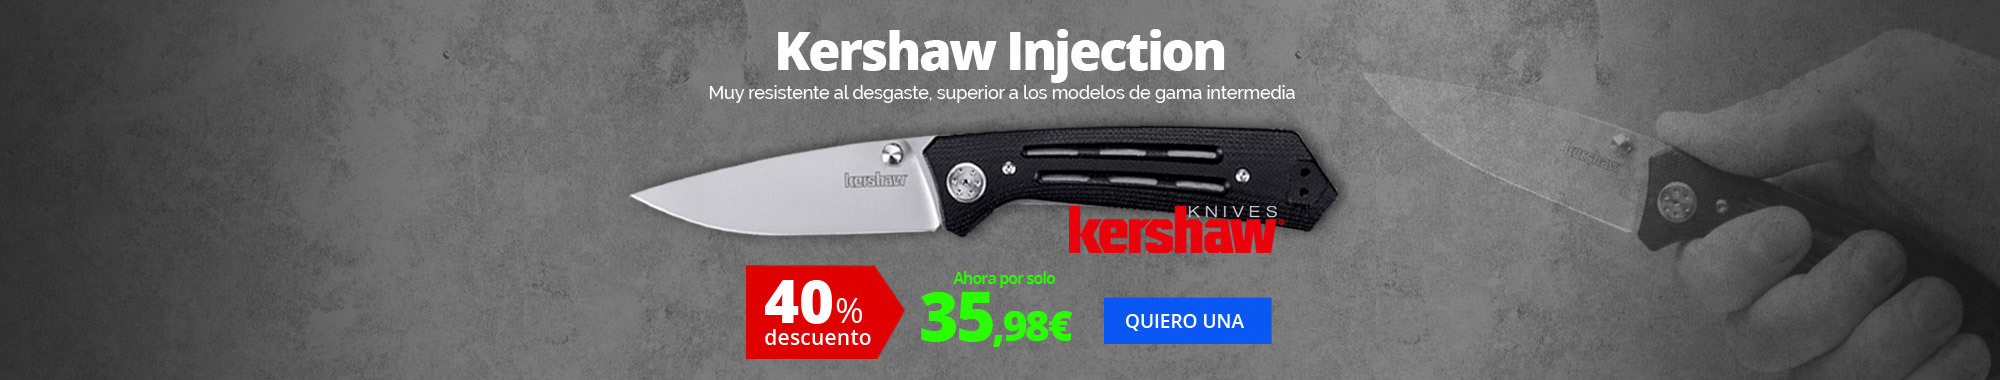 40% dto Kershaw Injection